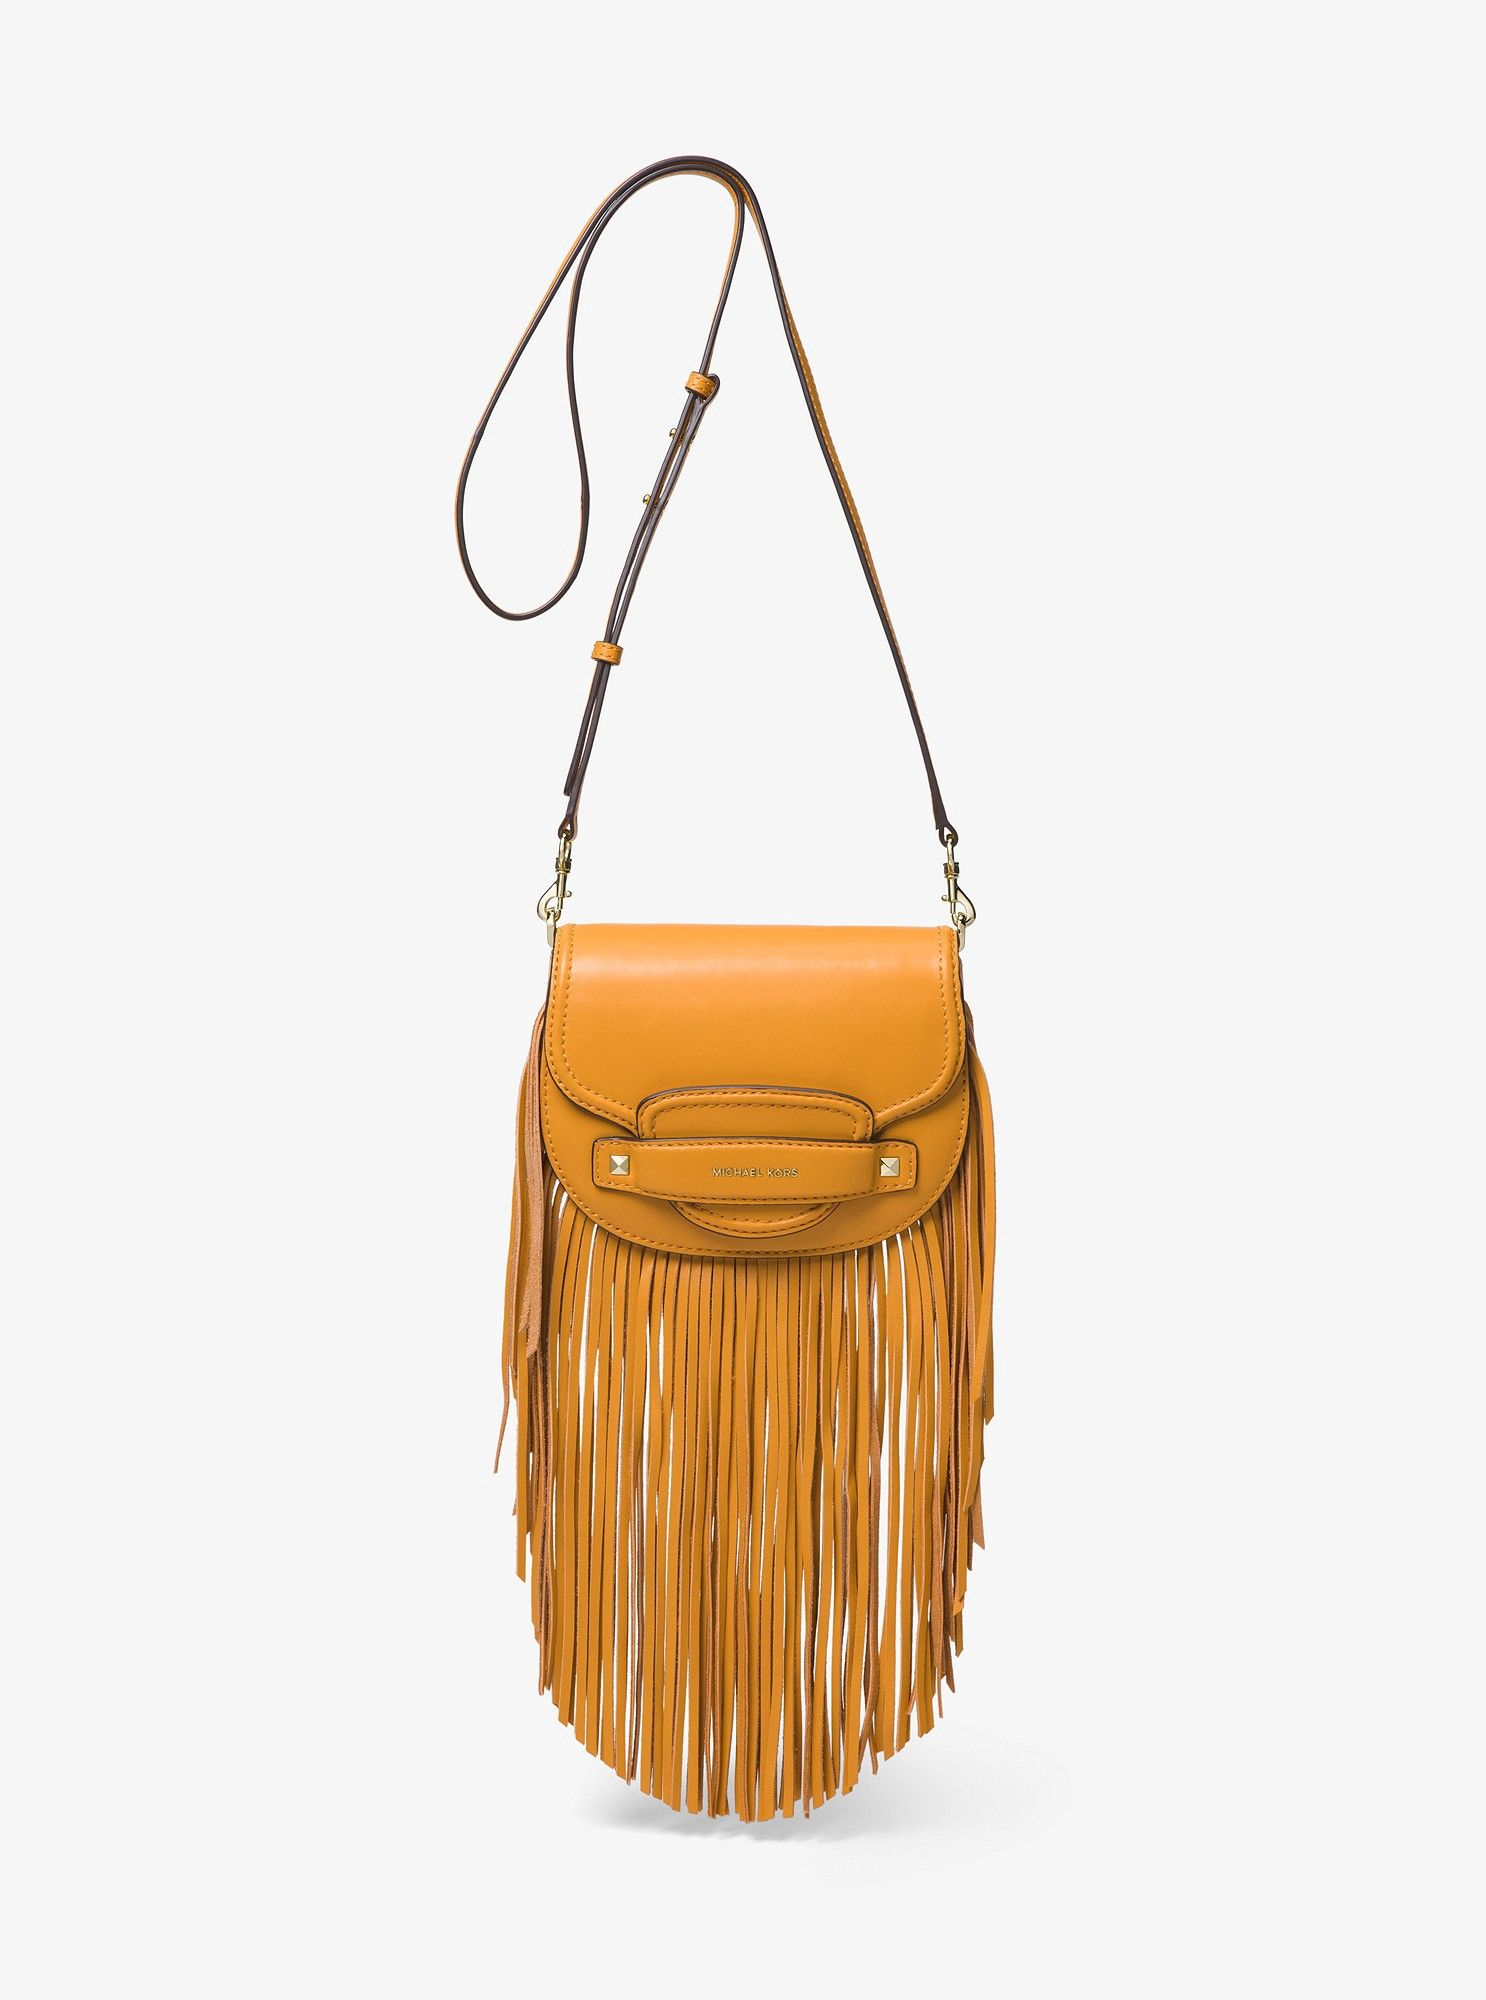 2f0f1d15d014 Michael Kors Cary Small Fringed Leather Saddle Bag - Marigold in ...